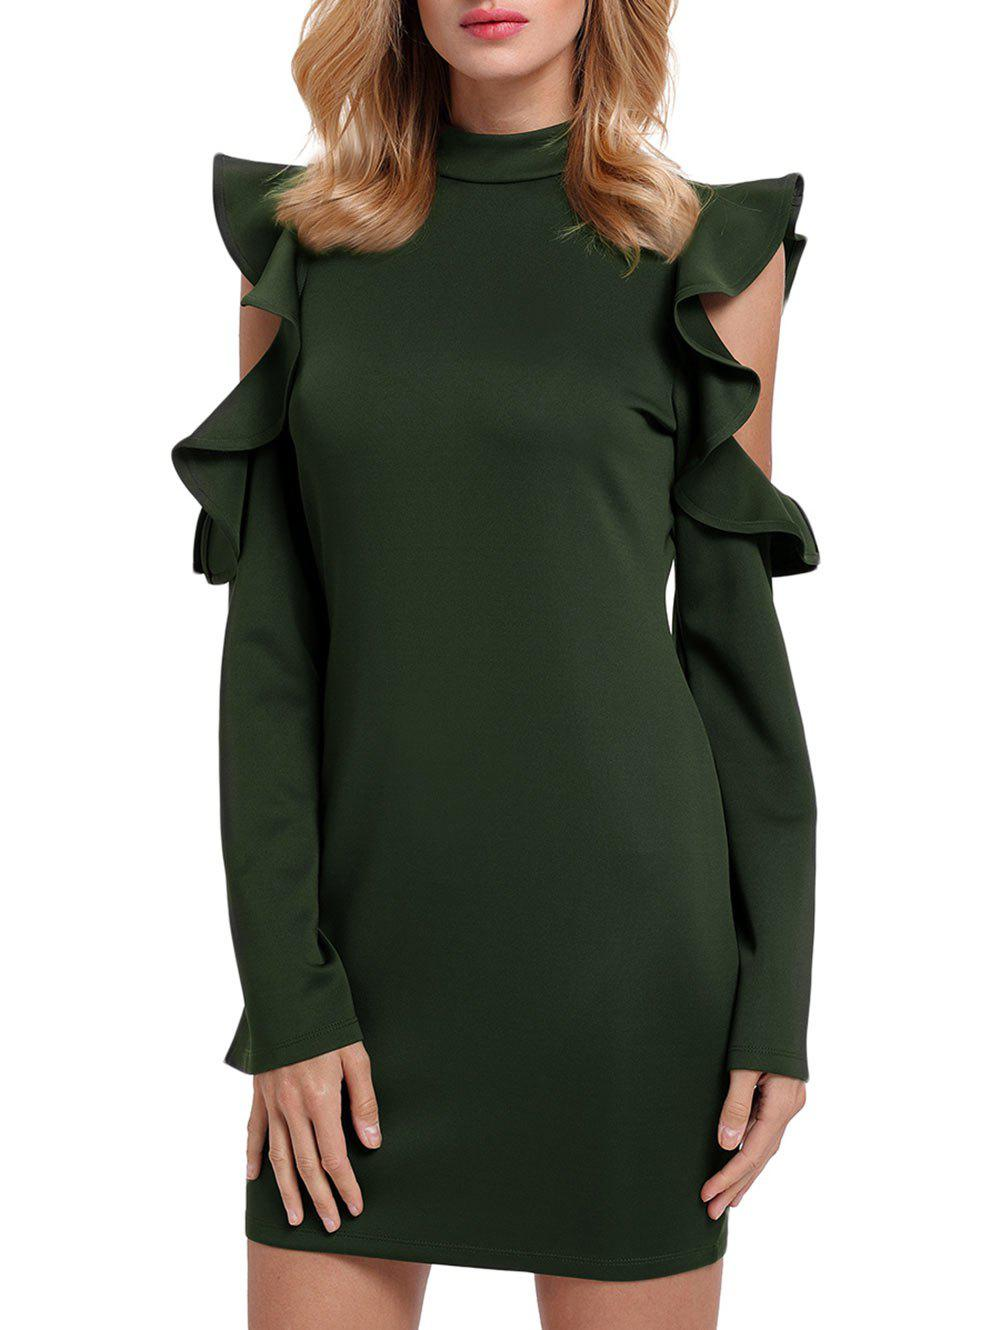 Mock Neck Ruffles Cut Out Sheath Dress - GREEN M